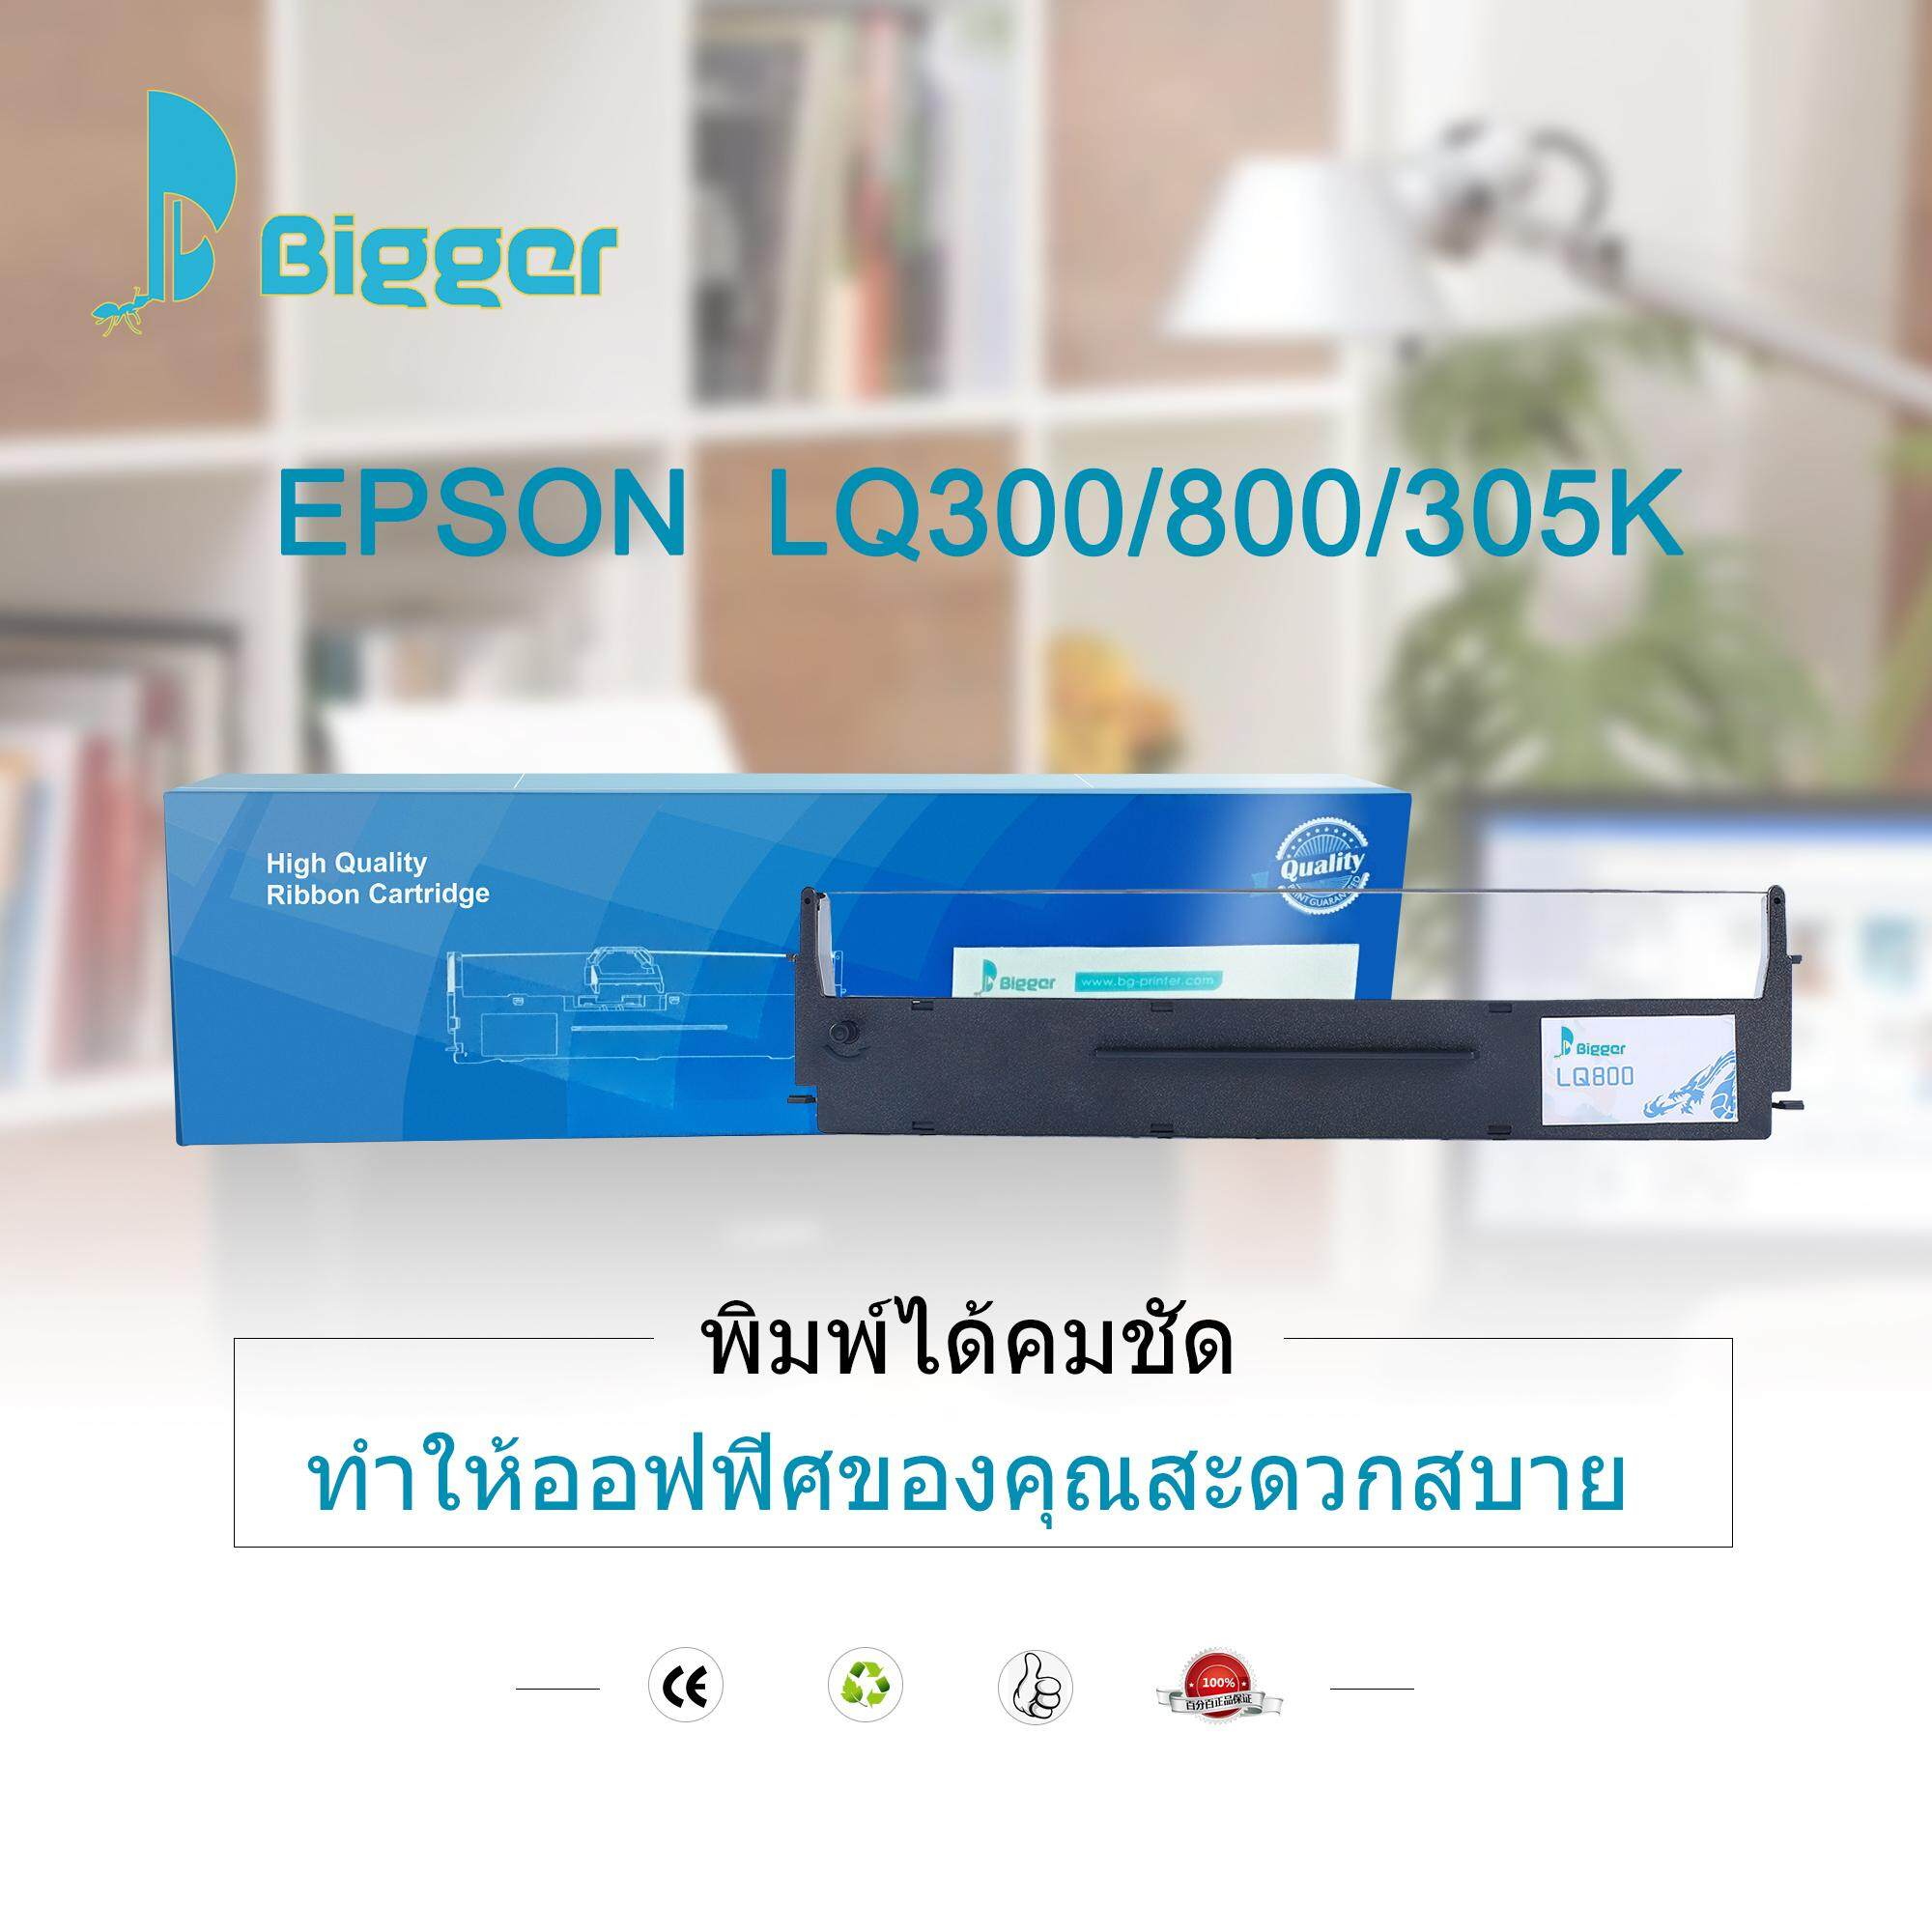 Bigger ตลับผ้าหมึก Ribbon Cartridge EPSON LQ300/800/305K